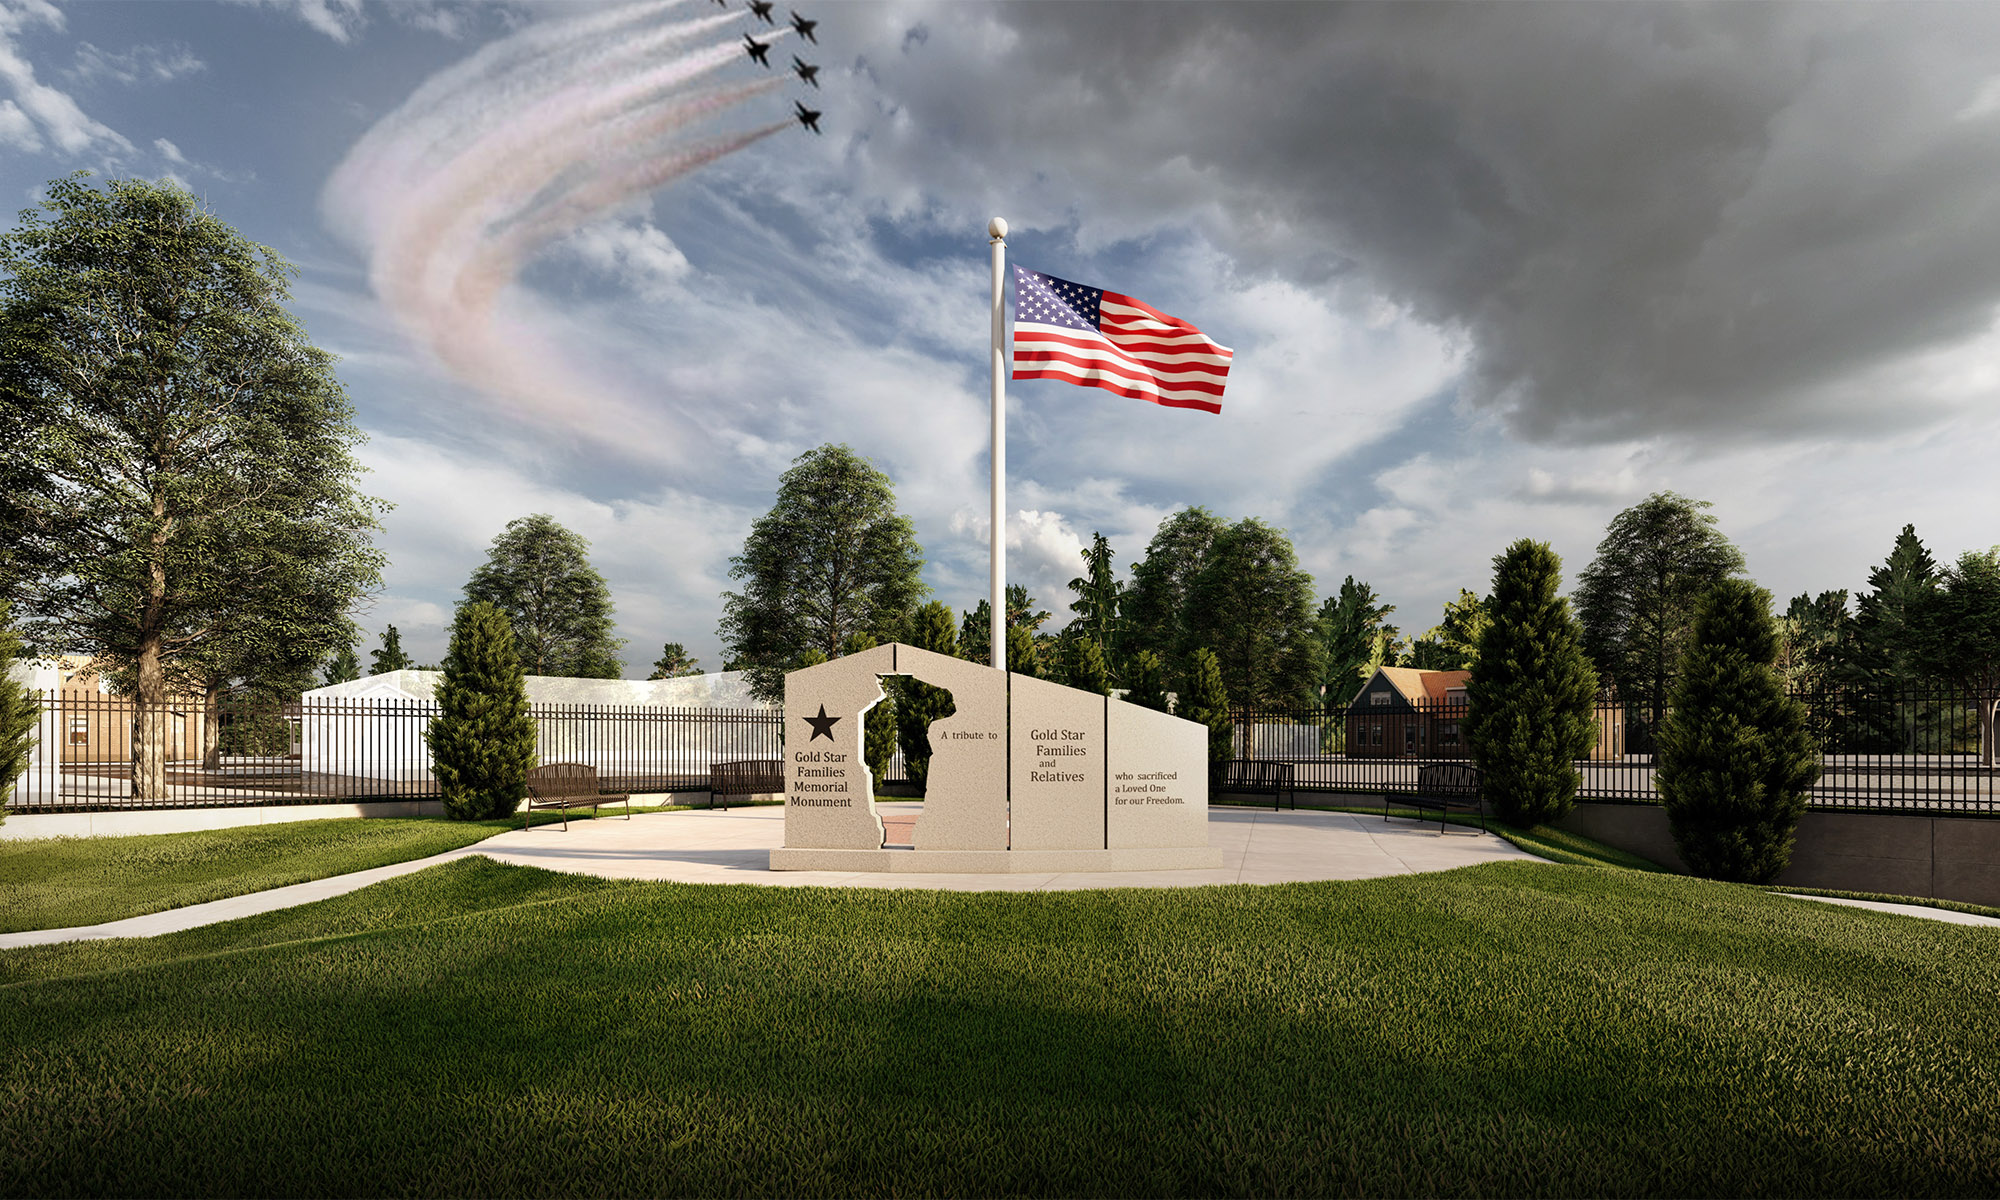 monument in a park with an american flag flying behind it